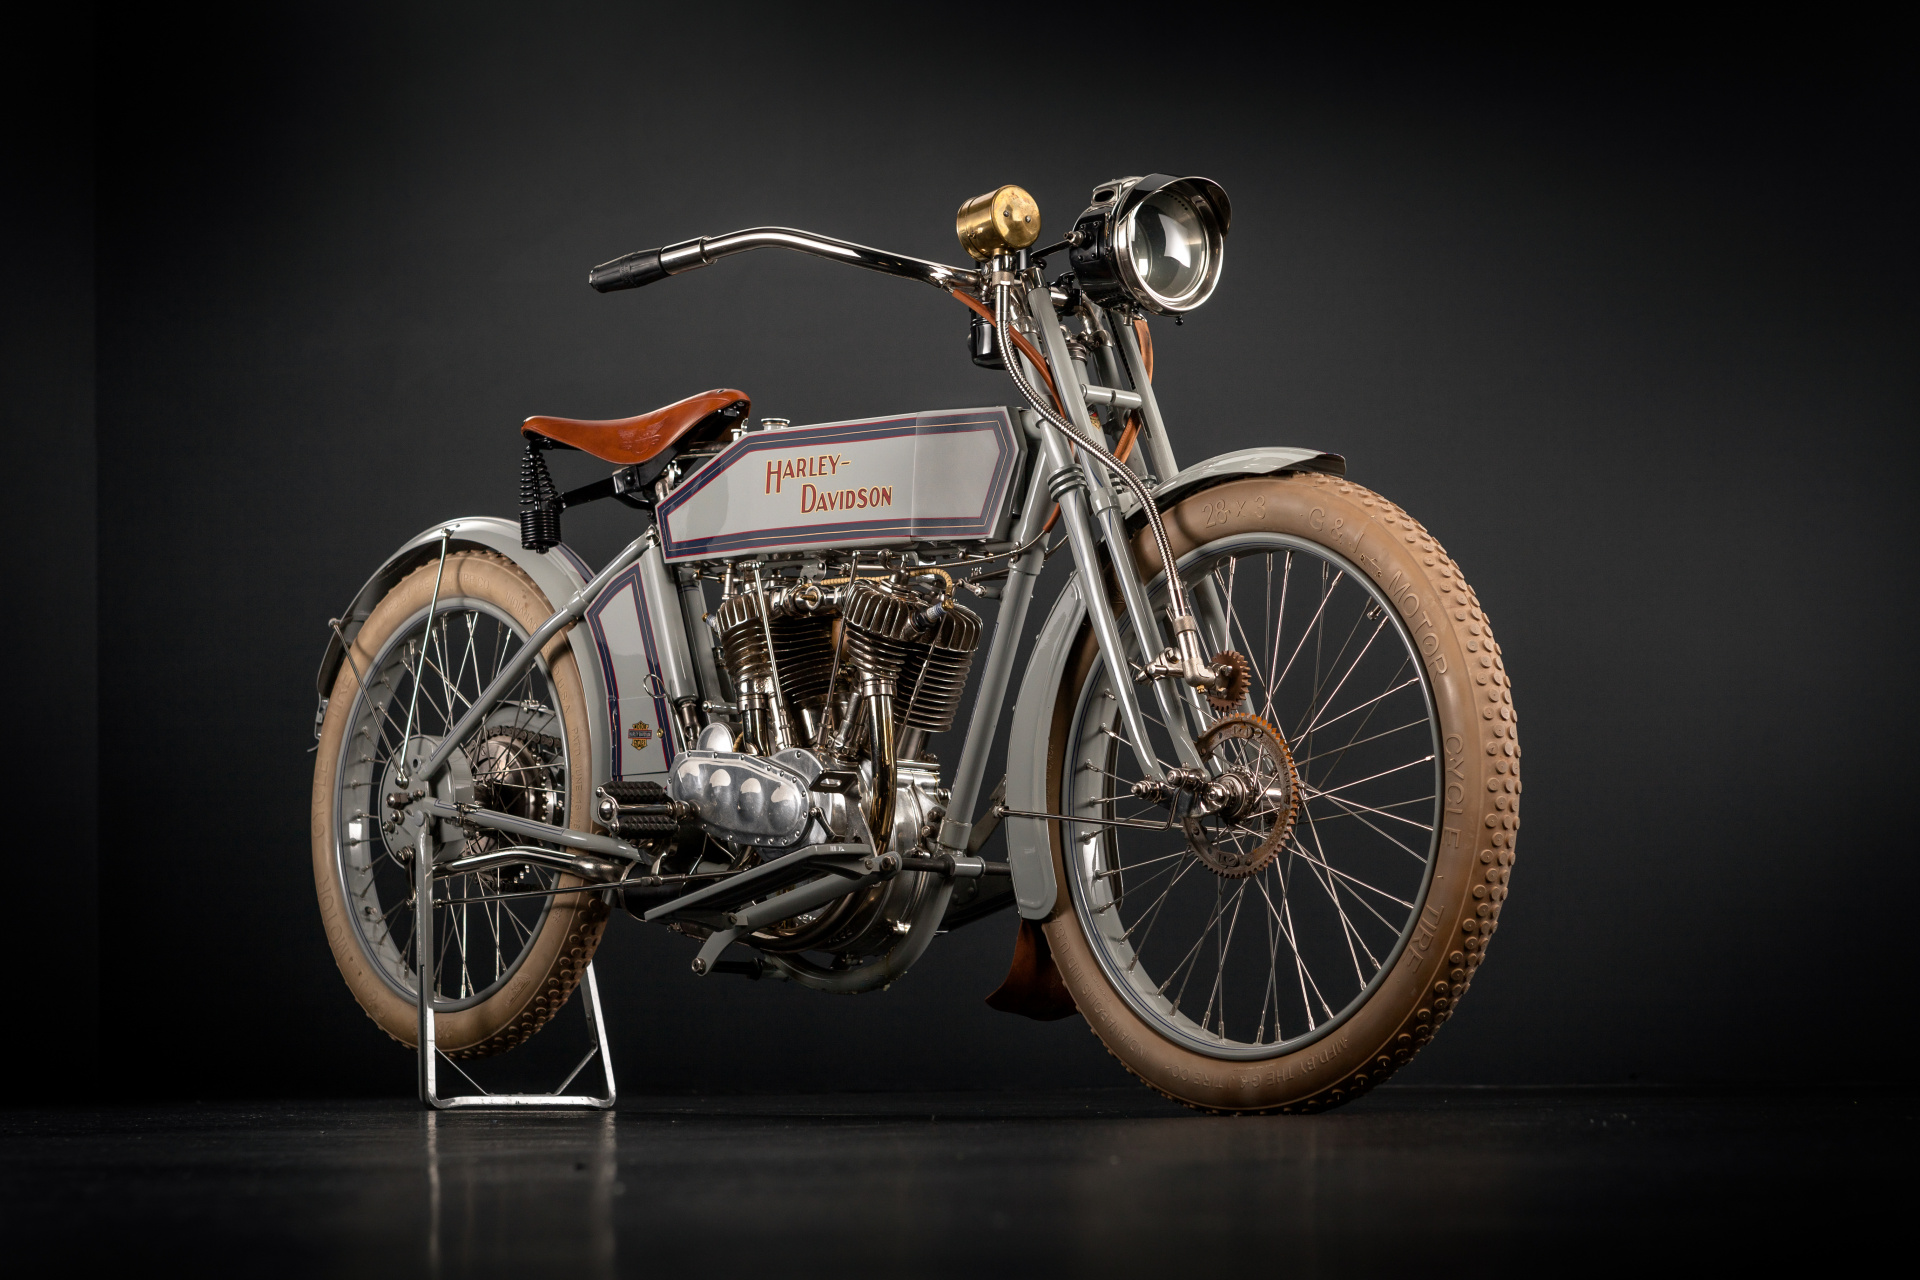 Early 20th century motorcycles